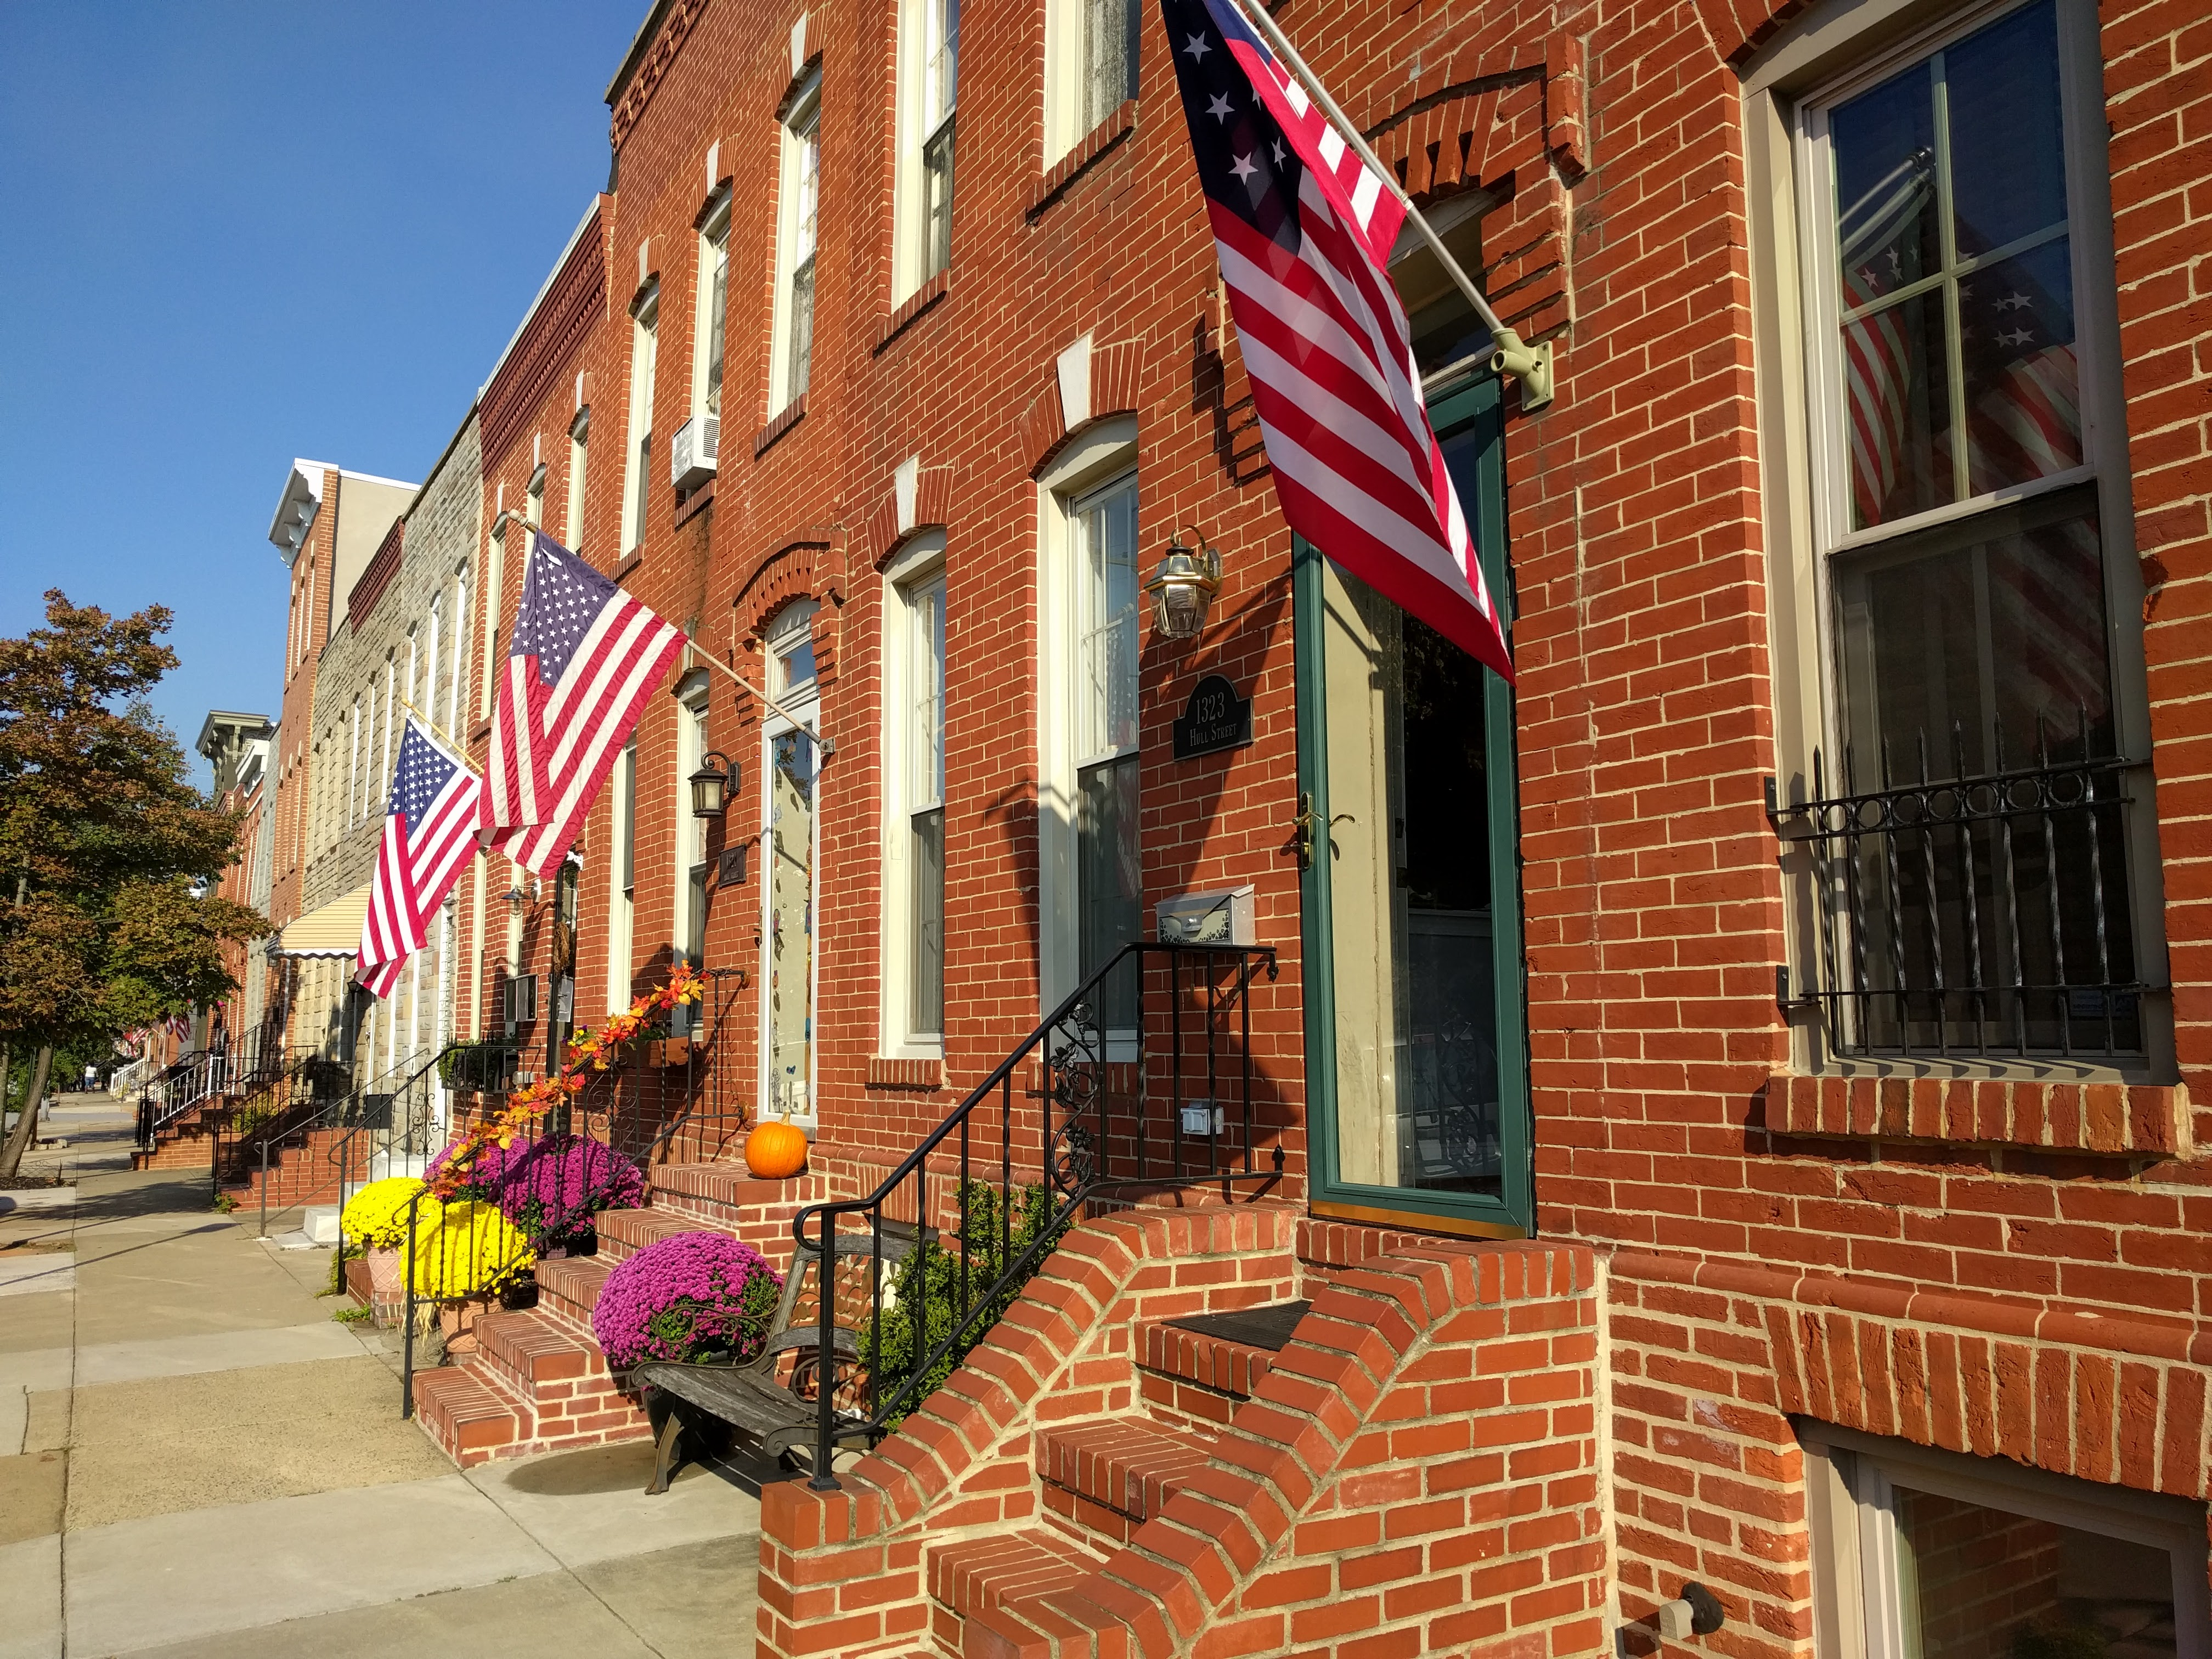 Locust Point - Flags and Rowhomes - Free Baltimore Photographs